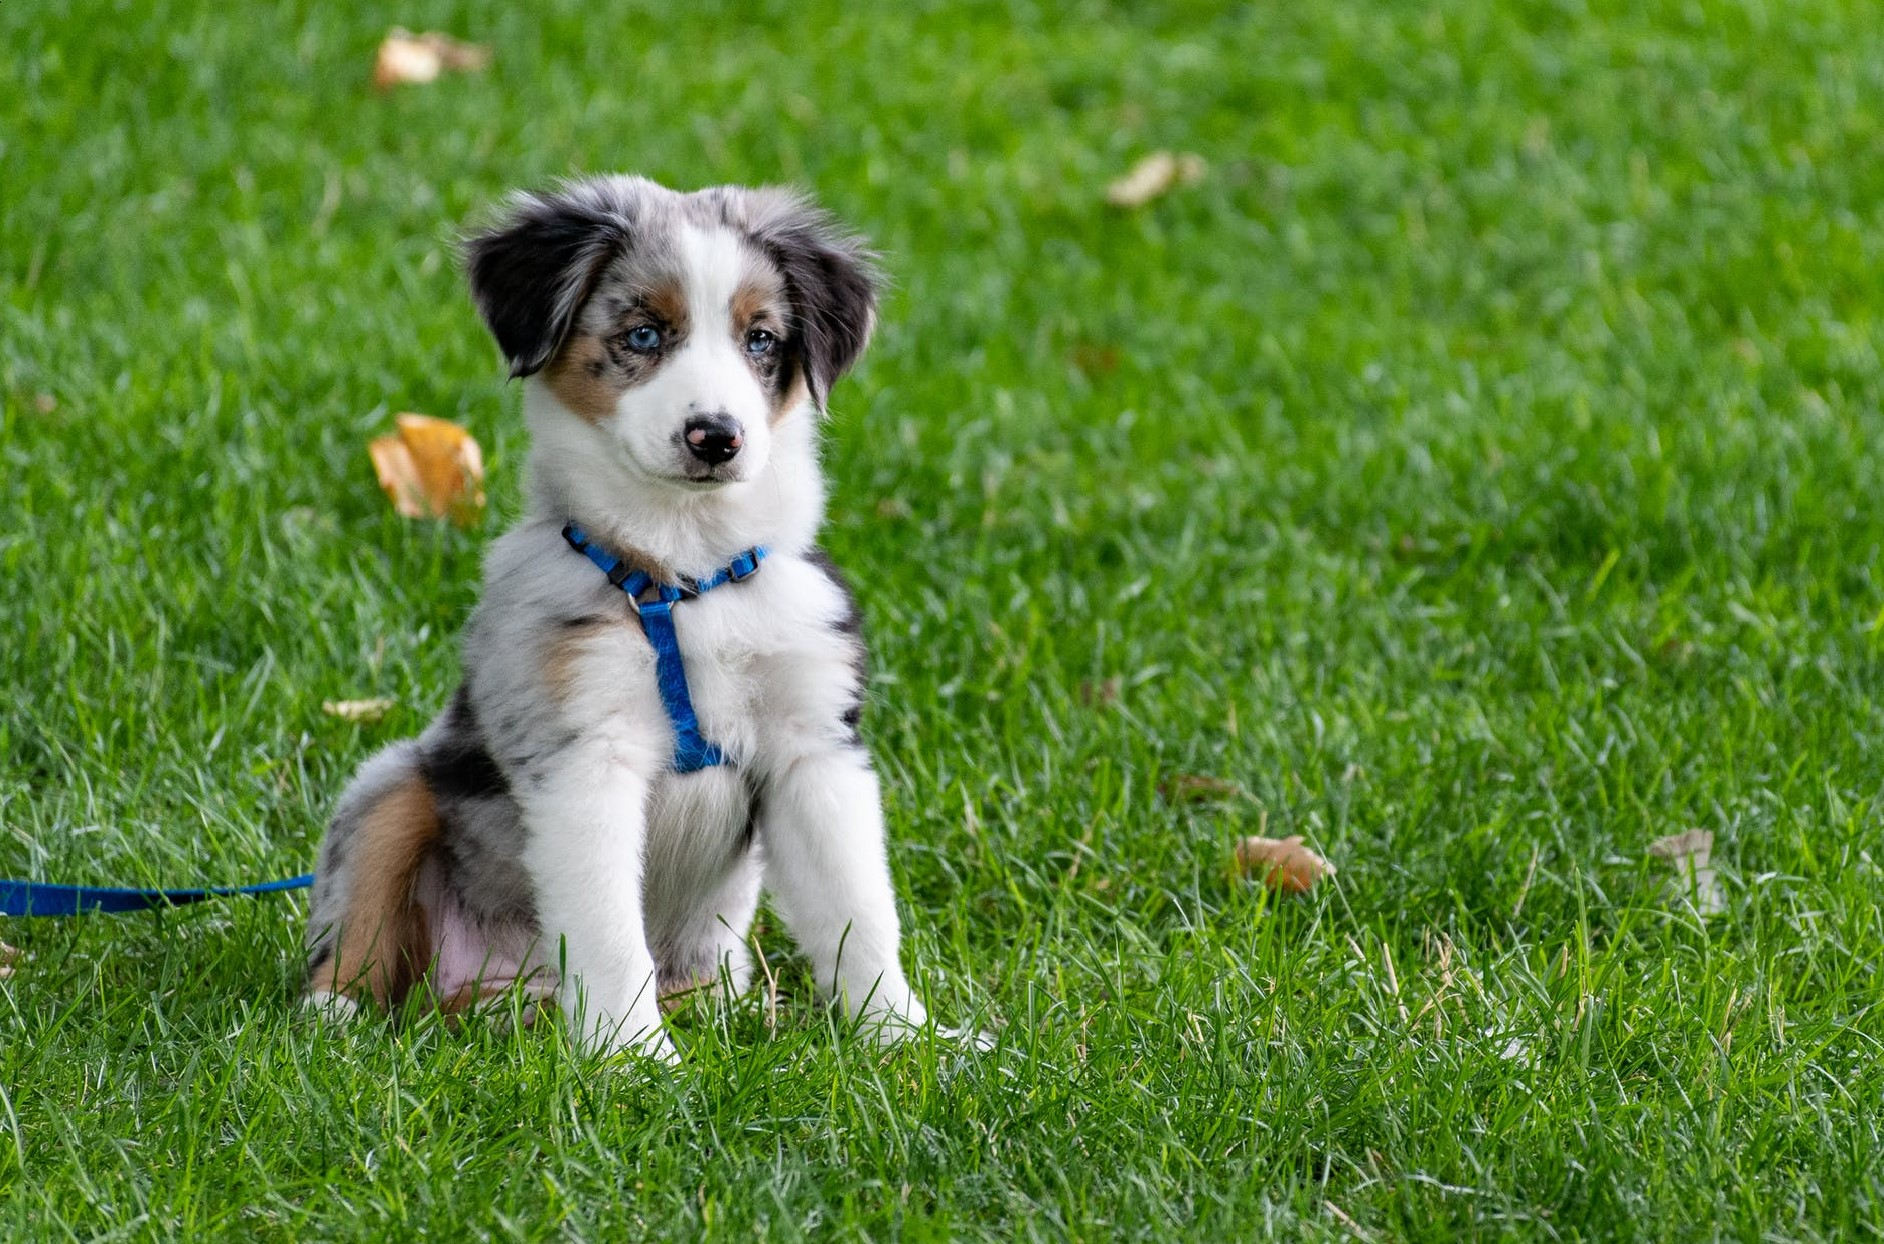 A puppy in a harness sitting on a garden lawn